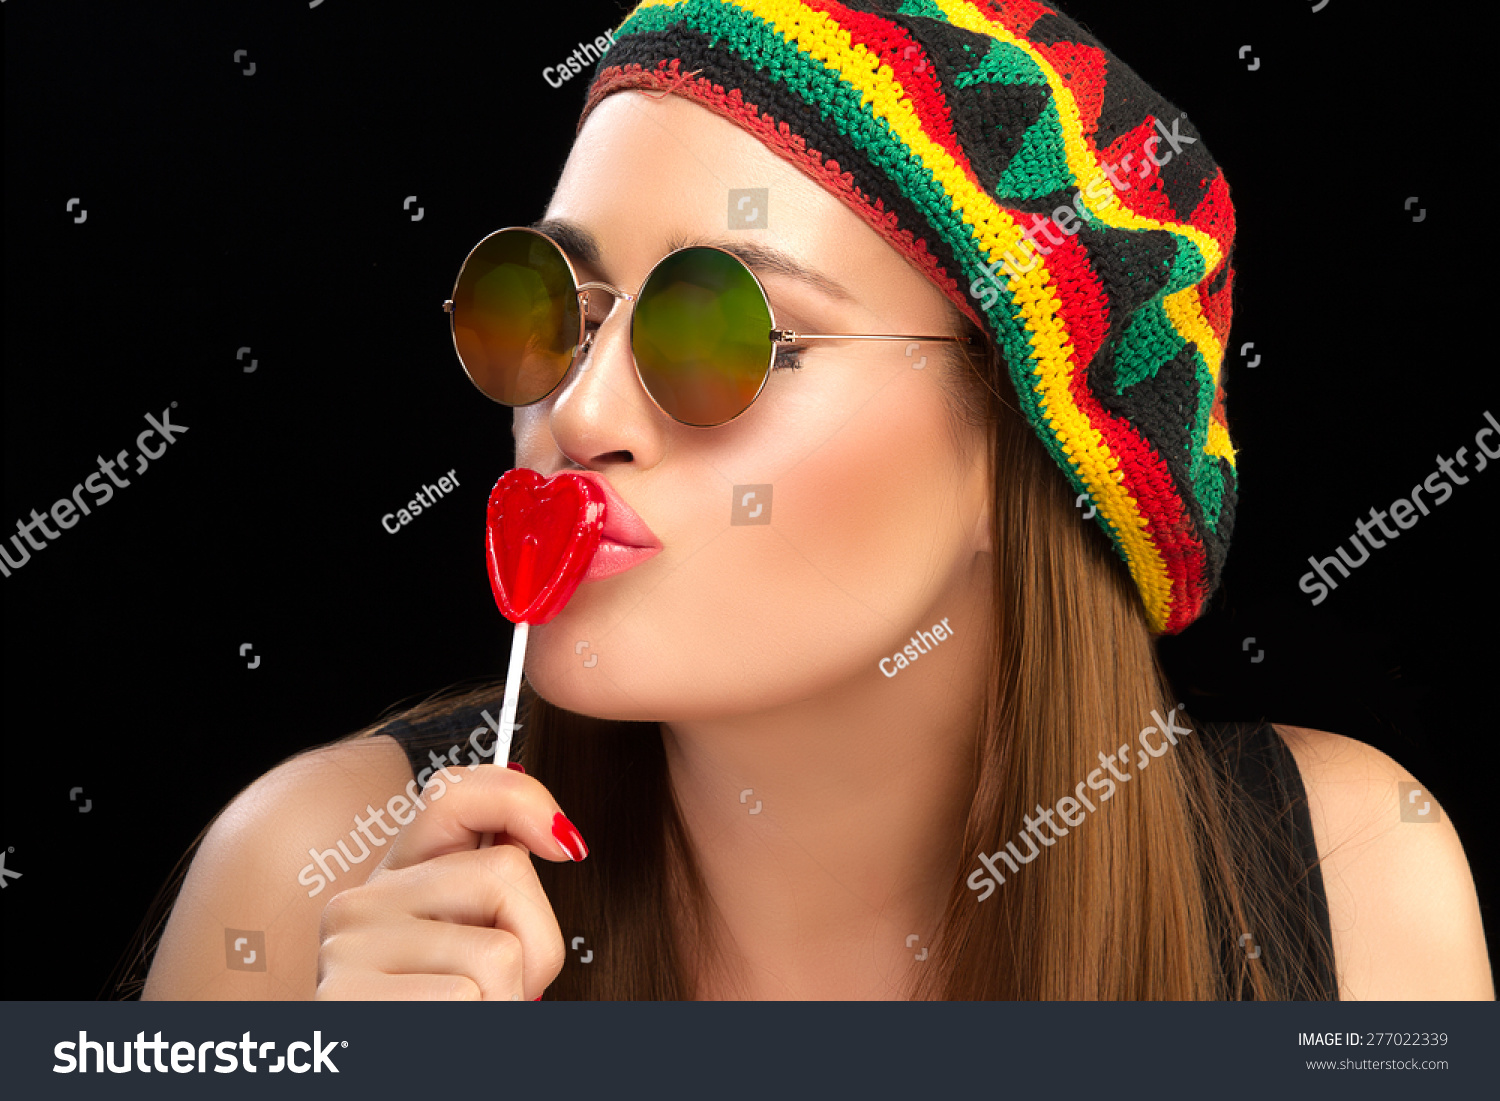 Stylish Young Pretty Woman in Rastafarian Hat and Trendy Sunglasses Kissing  a Heart Shaped Lollipop. 8a7c1d7d27e6